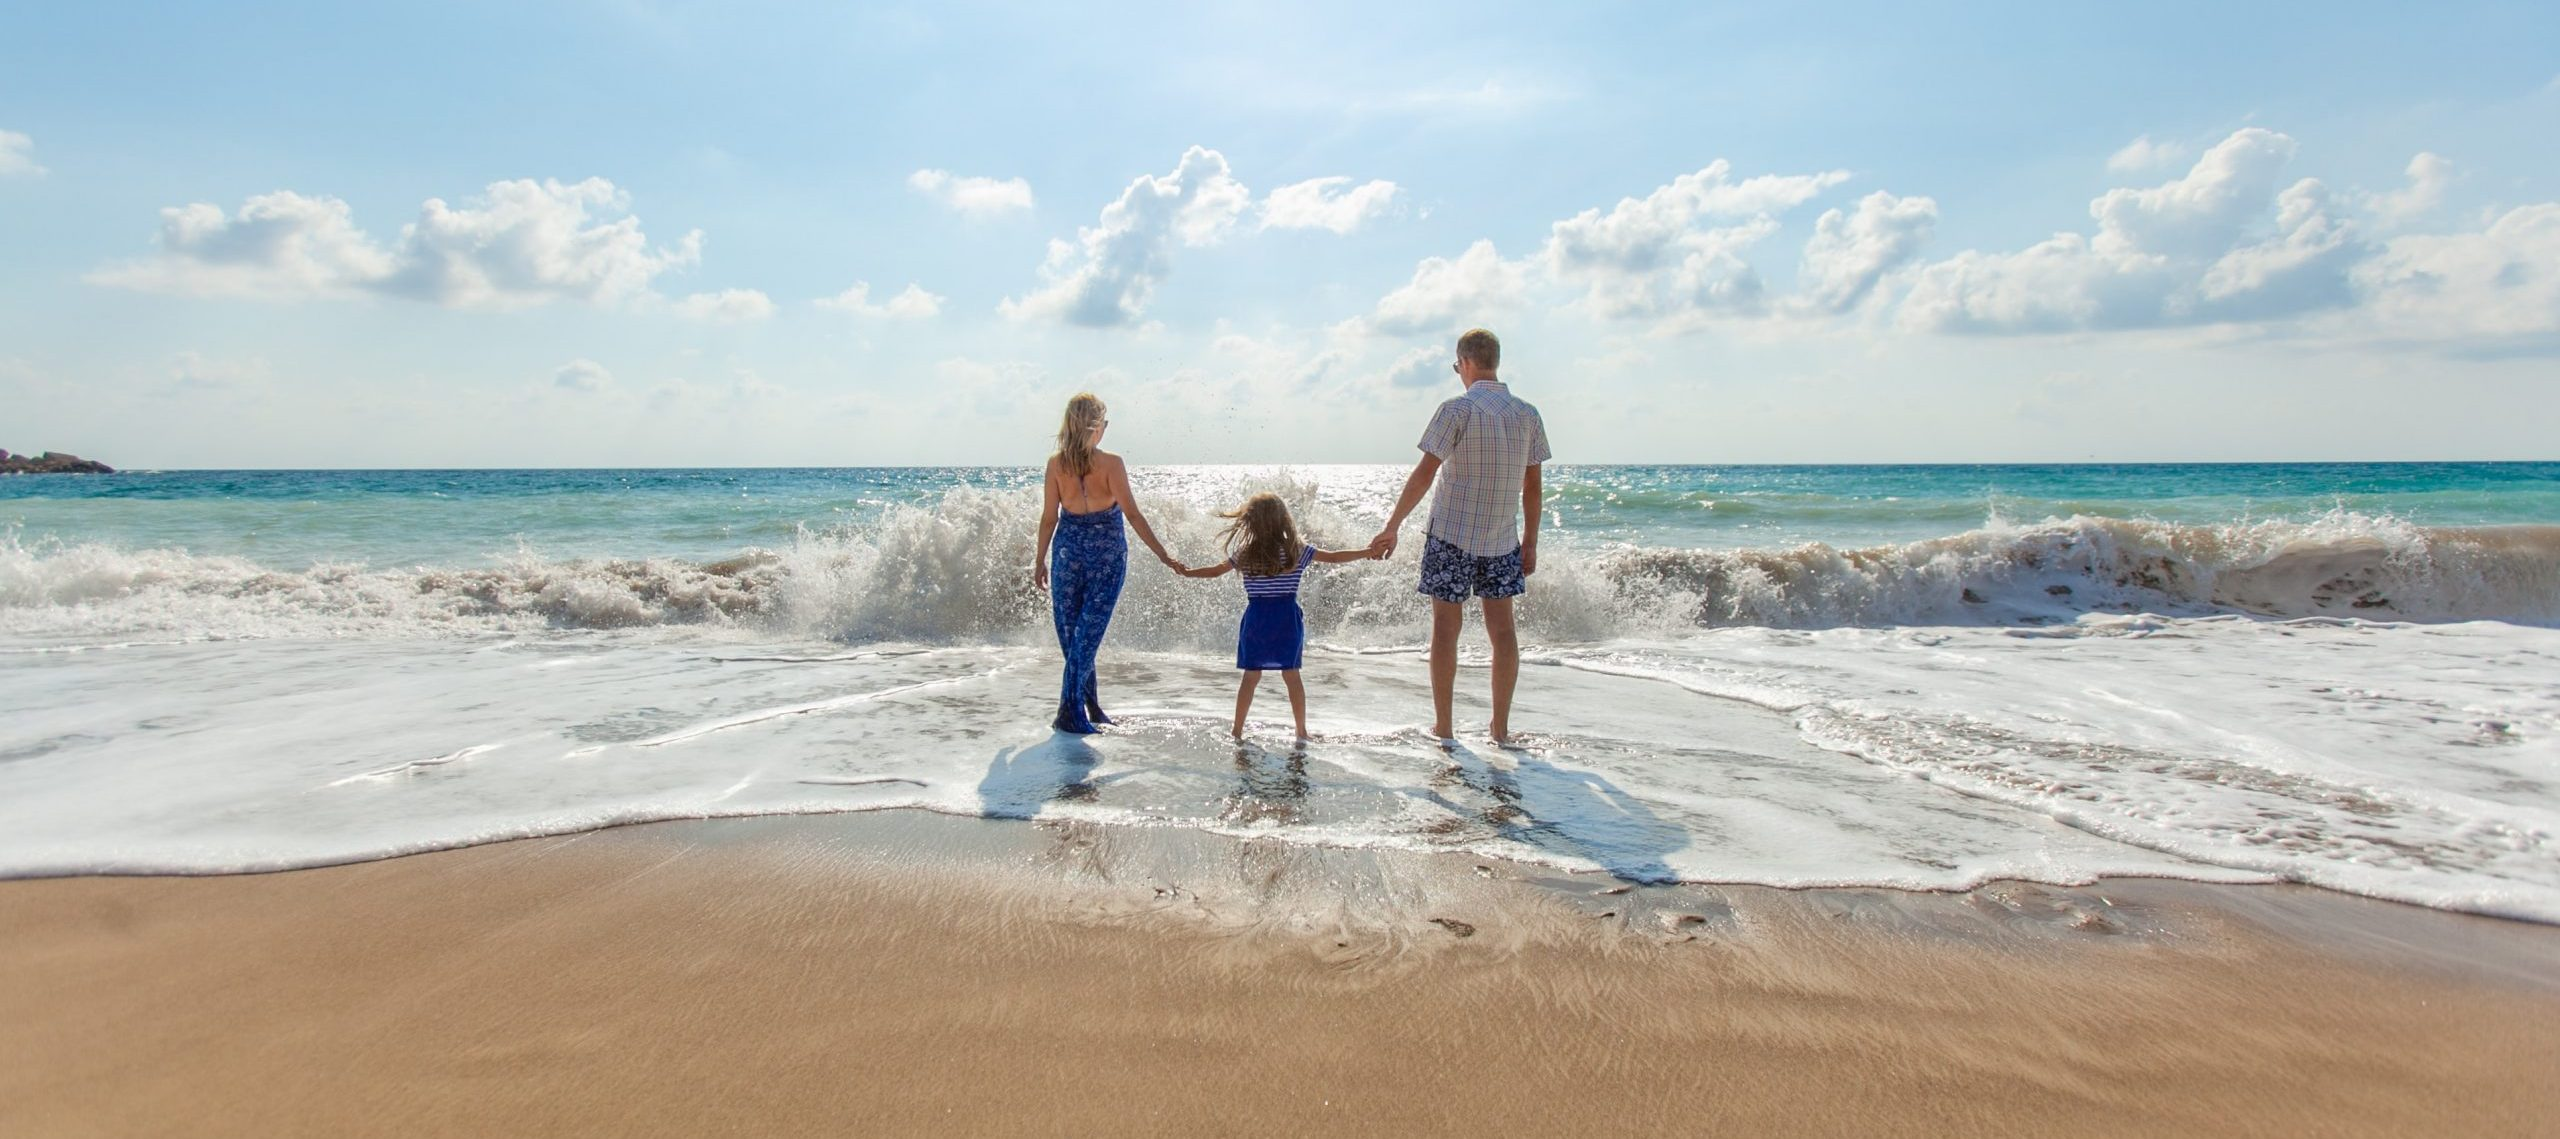 3 Essential Insurances one Should Have in Portugal